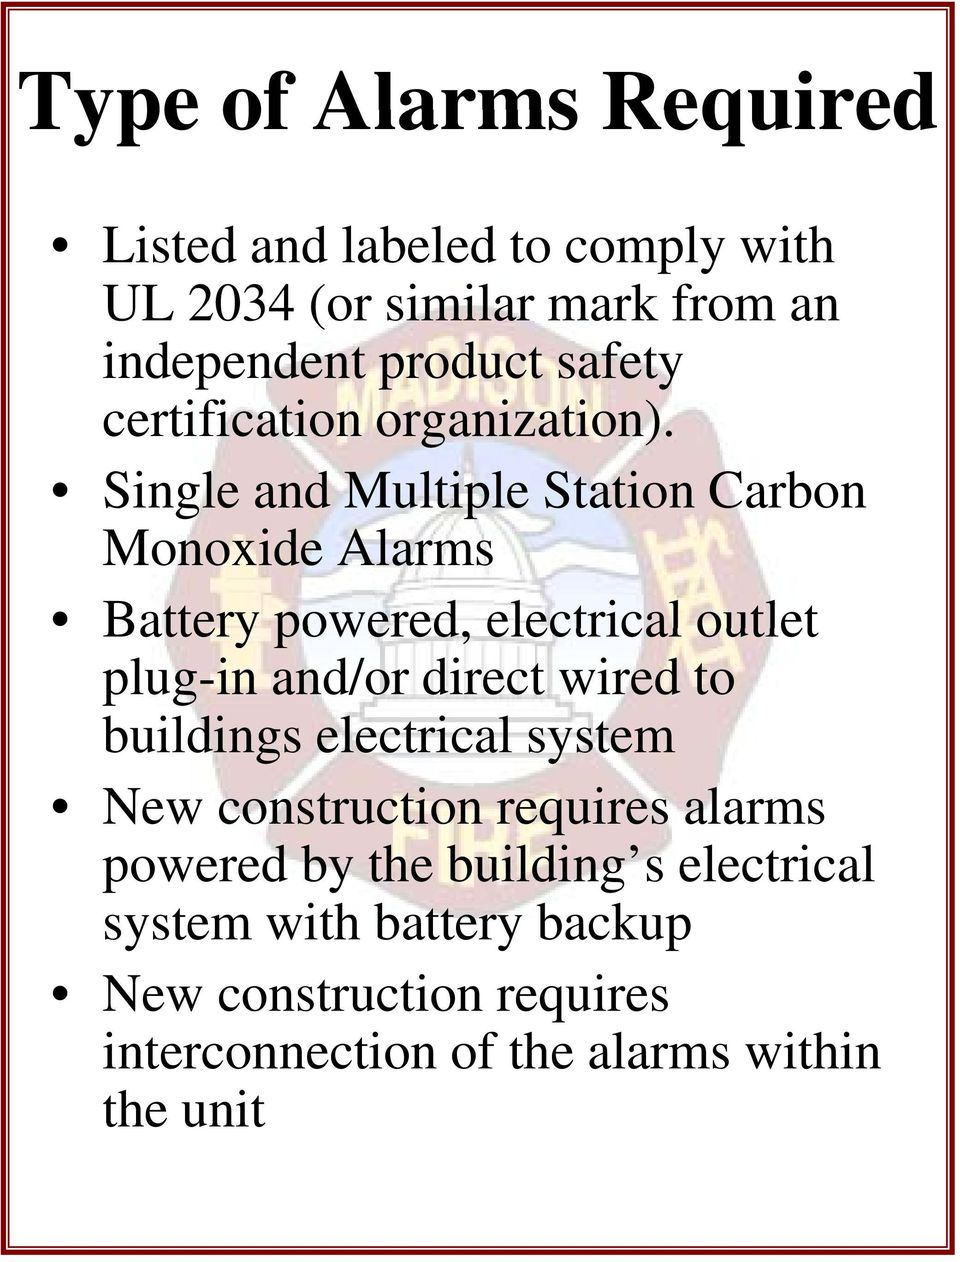 Single and Multiple Station Carbon Monoxide Alarms Battery powered, electrical outlet plug-in and/or direct wired